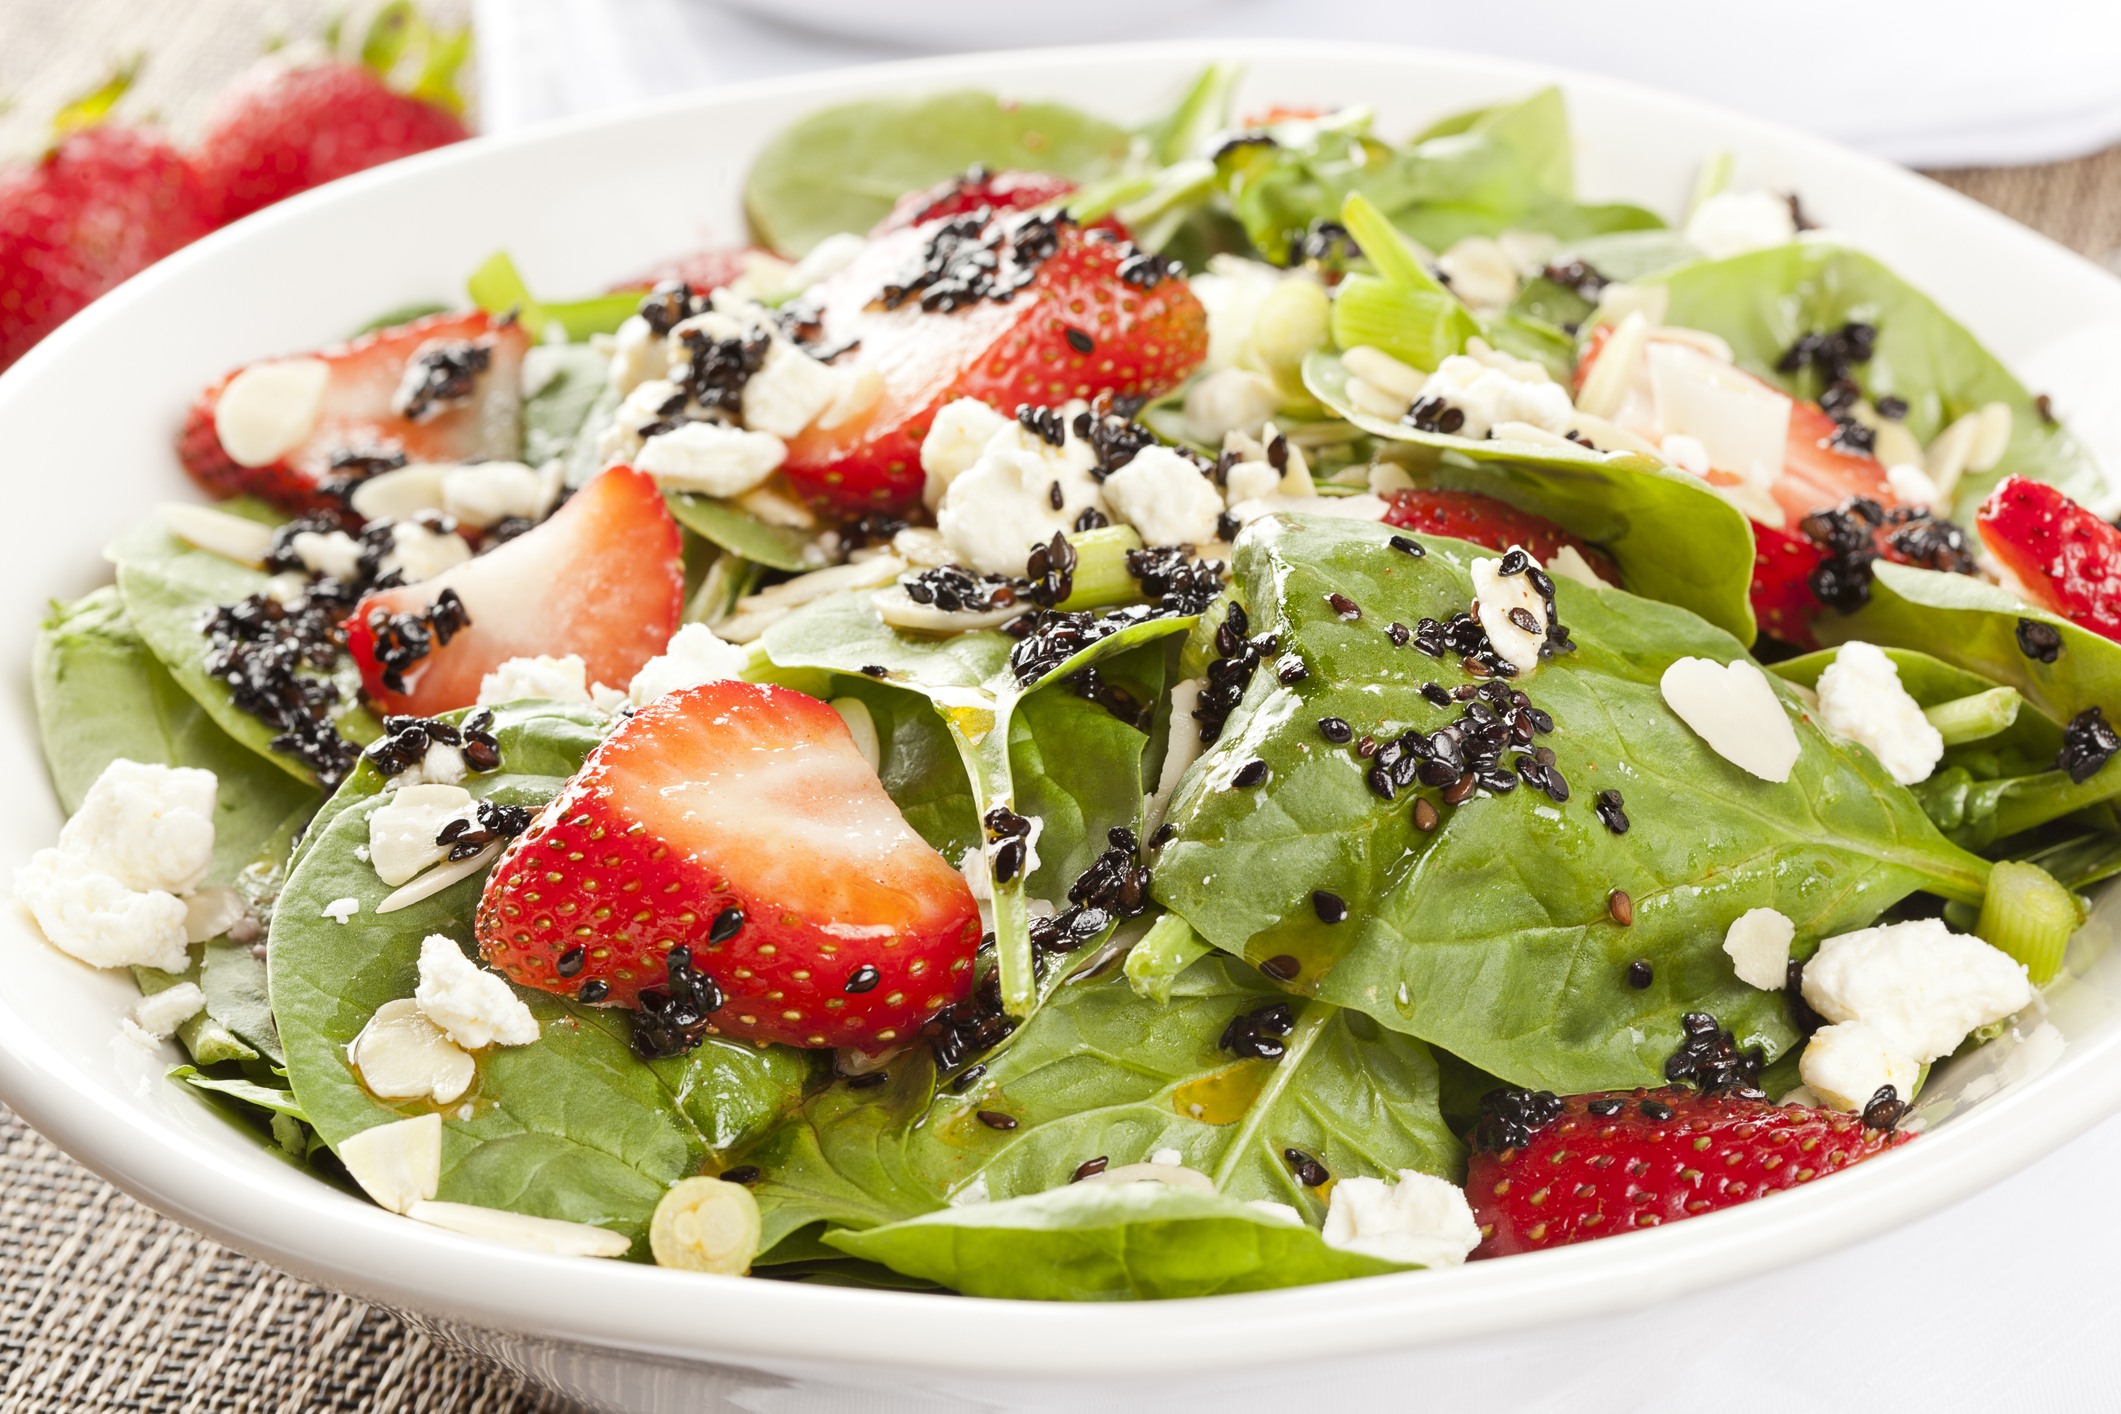 © Bhofack2 | Dreamstime.com - Fresh Homemade Strawberry Spinach Salad Photo